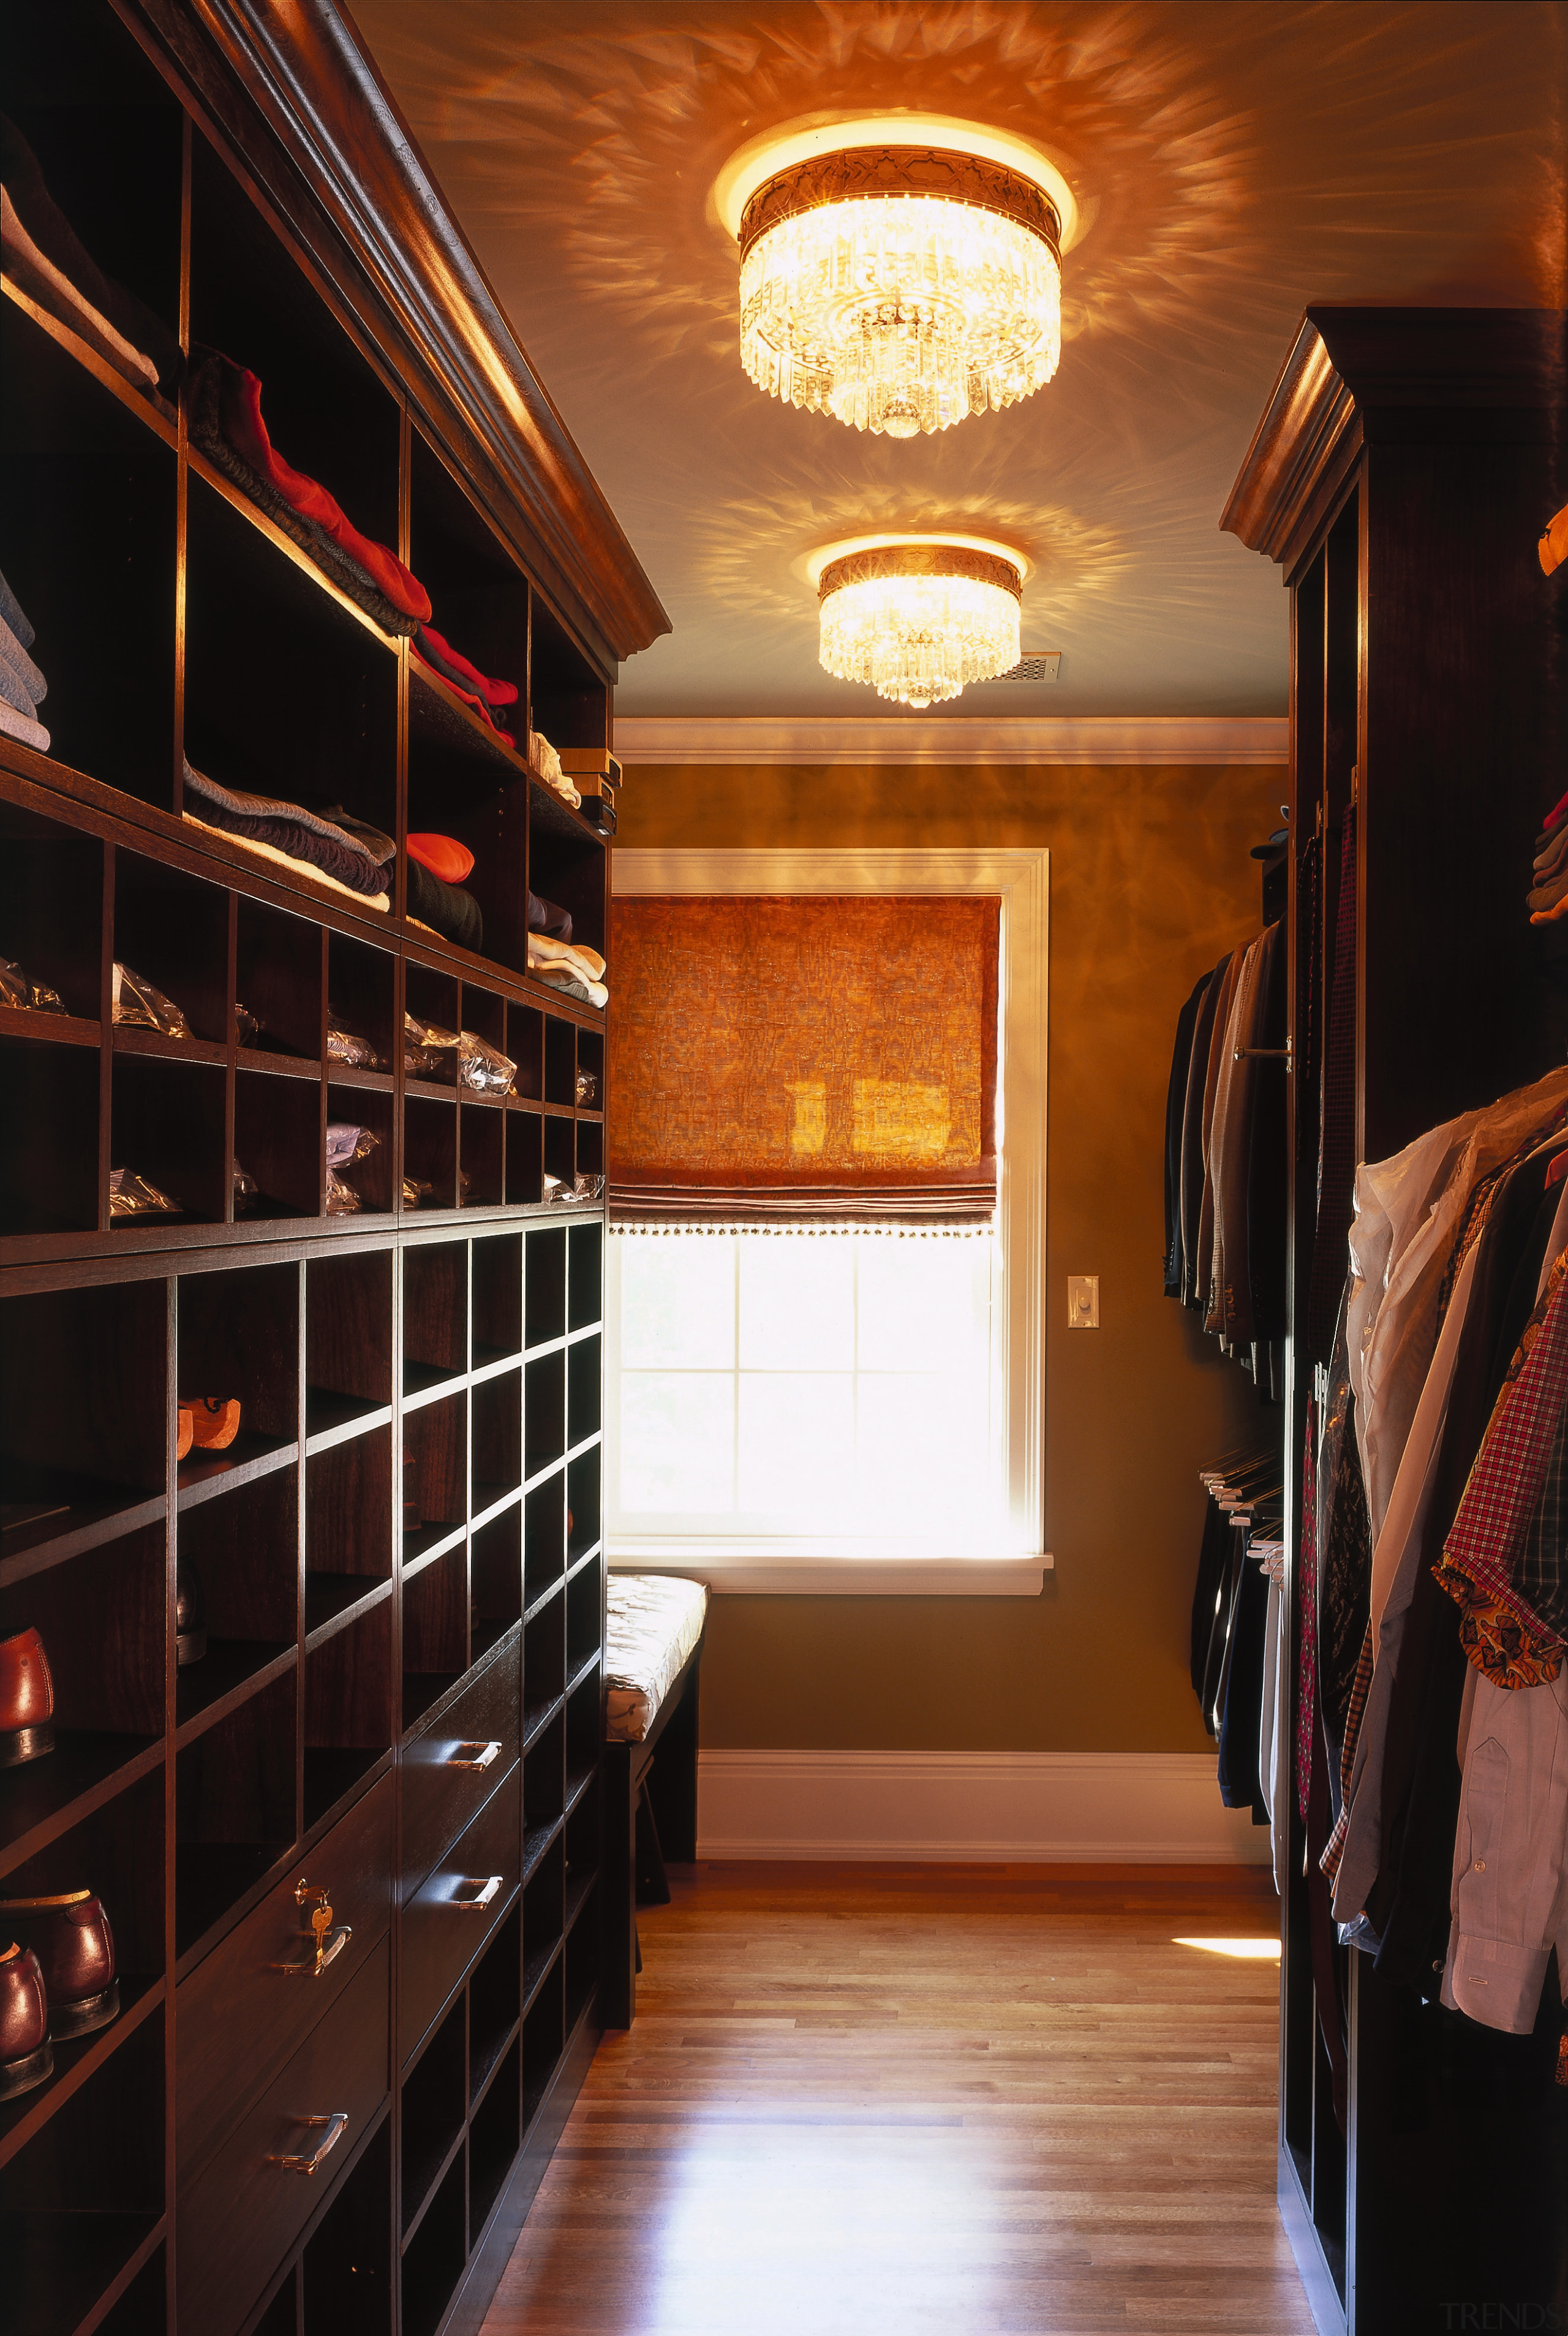 A view of the closet. - A view cabinetry, ceiling, closet, flooring, hardwood, interior design, lighting, room, wood, black, brown